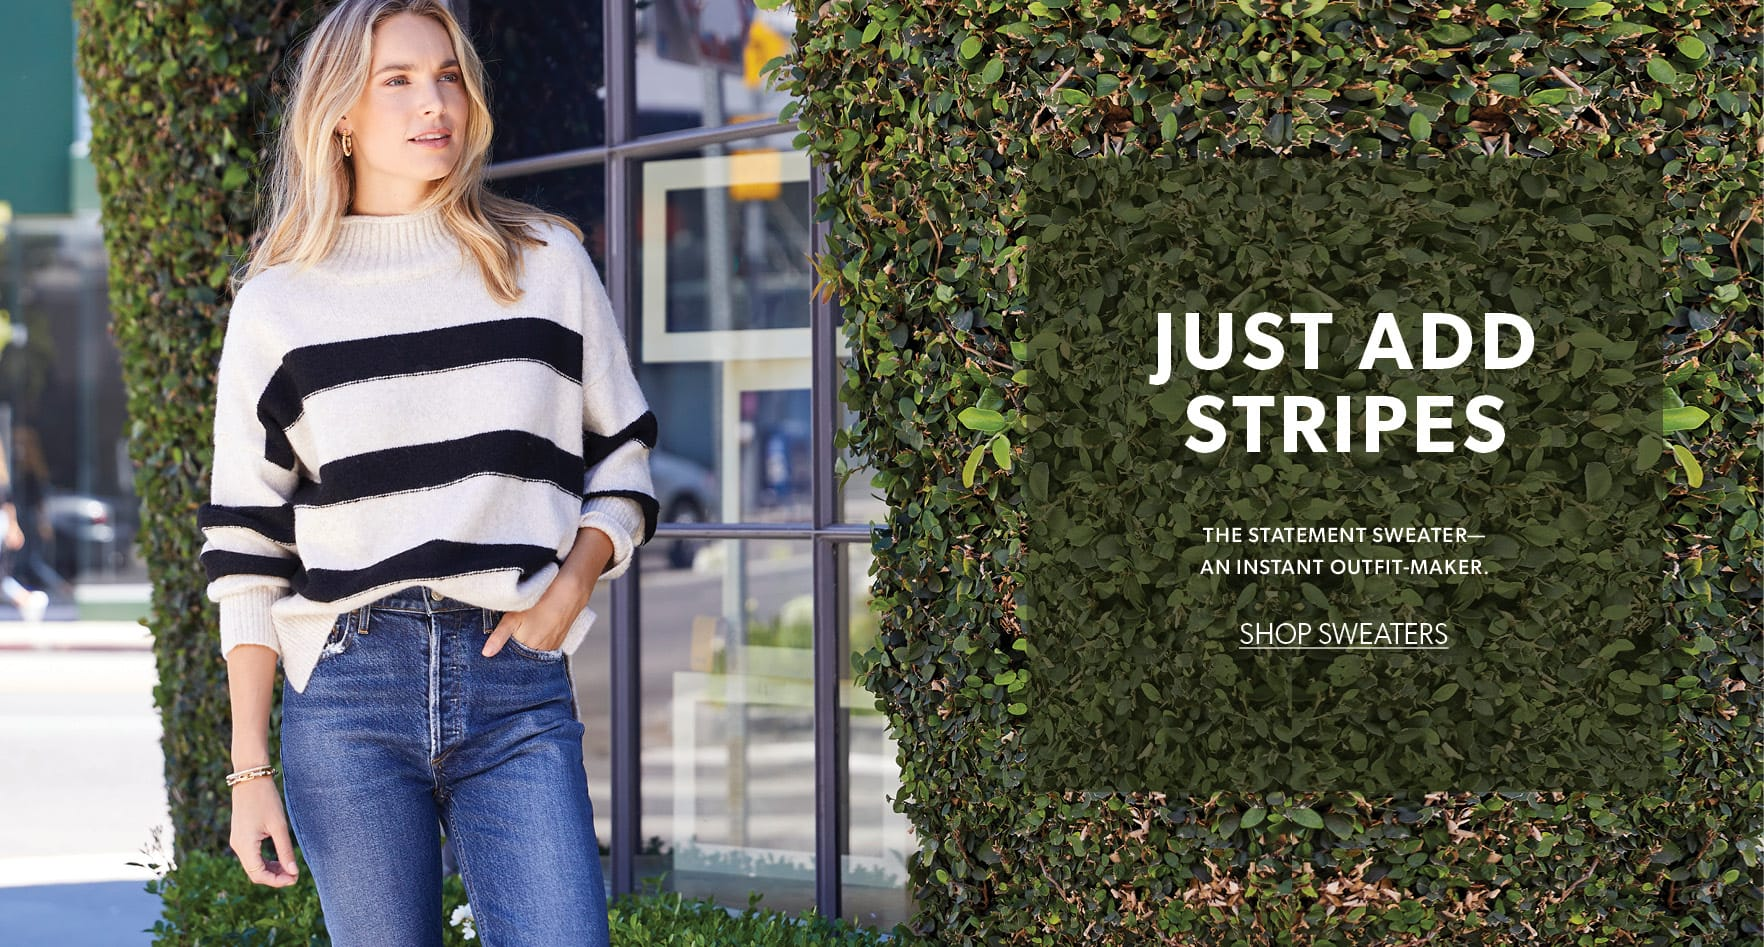 Just Add Stripes. The statement sweater - an instant outfit maker. SHOP SWEATERS.